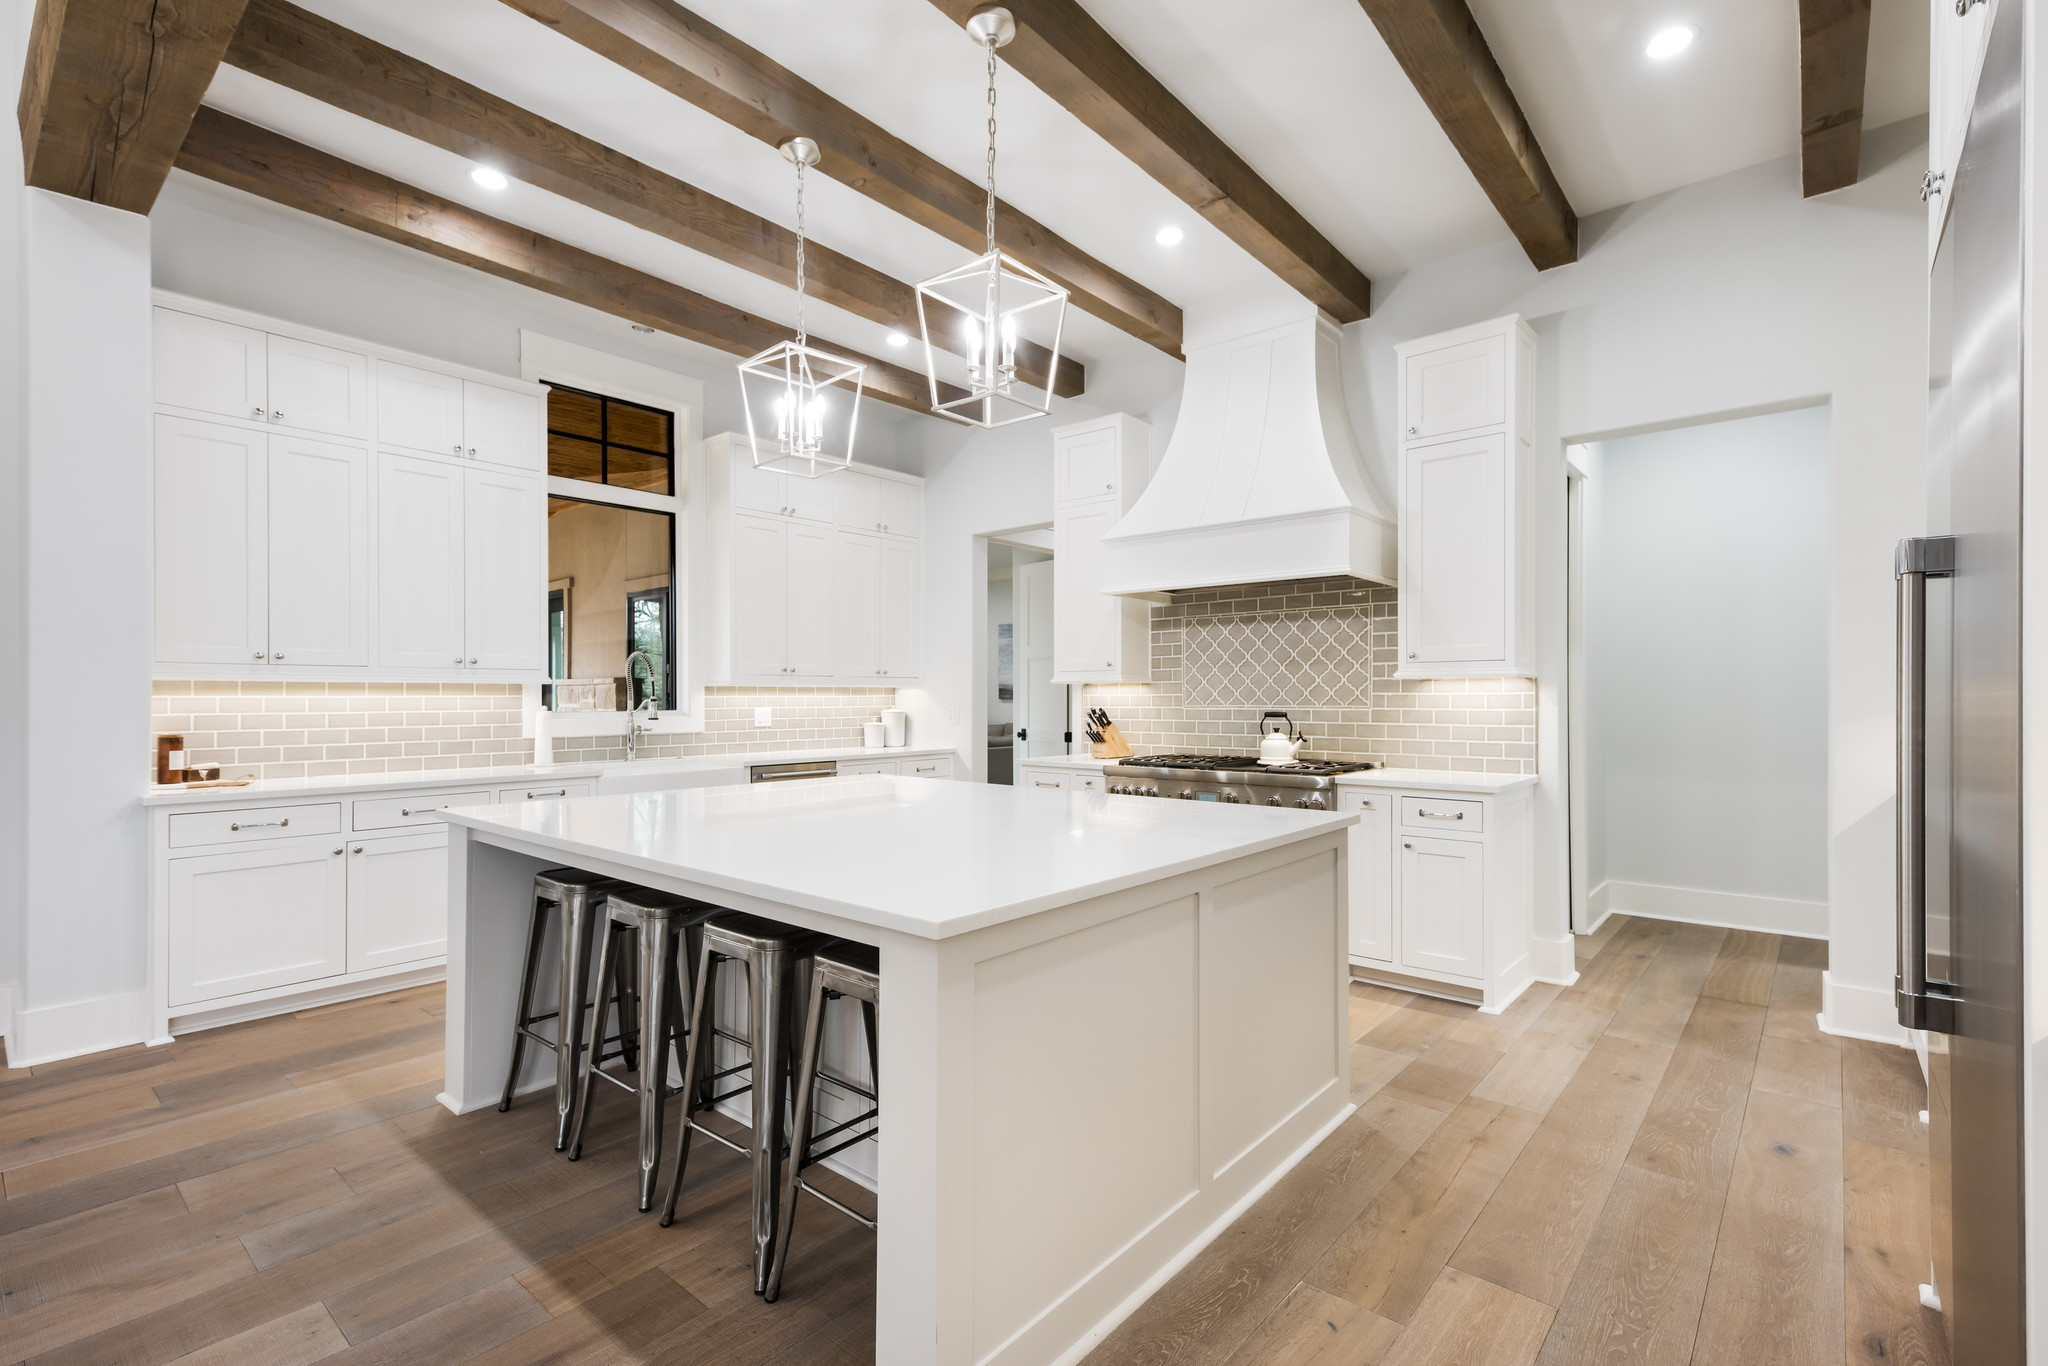 https://lingenfeltercustomhomes.com/wp-content/uploads/2019/08/9-1.jpg